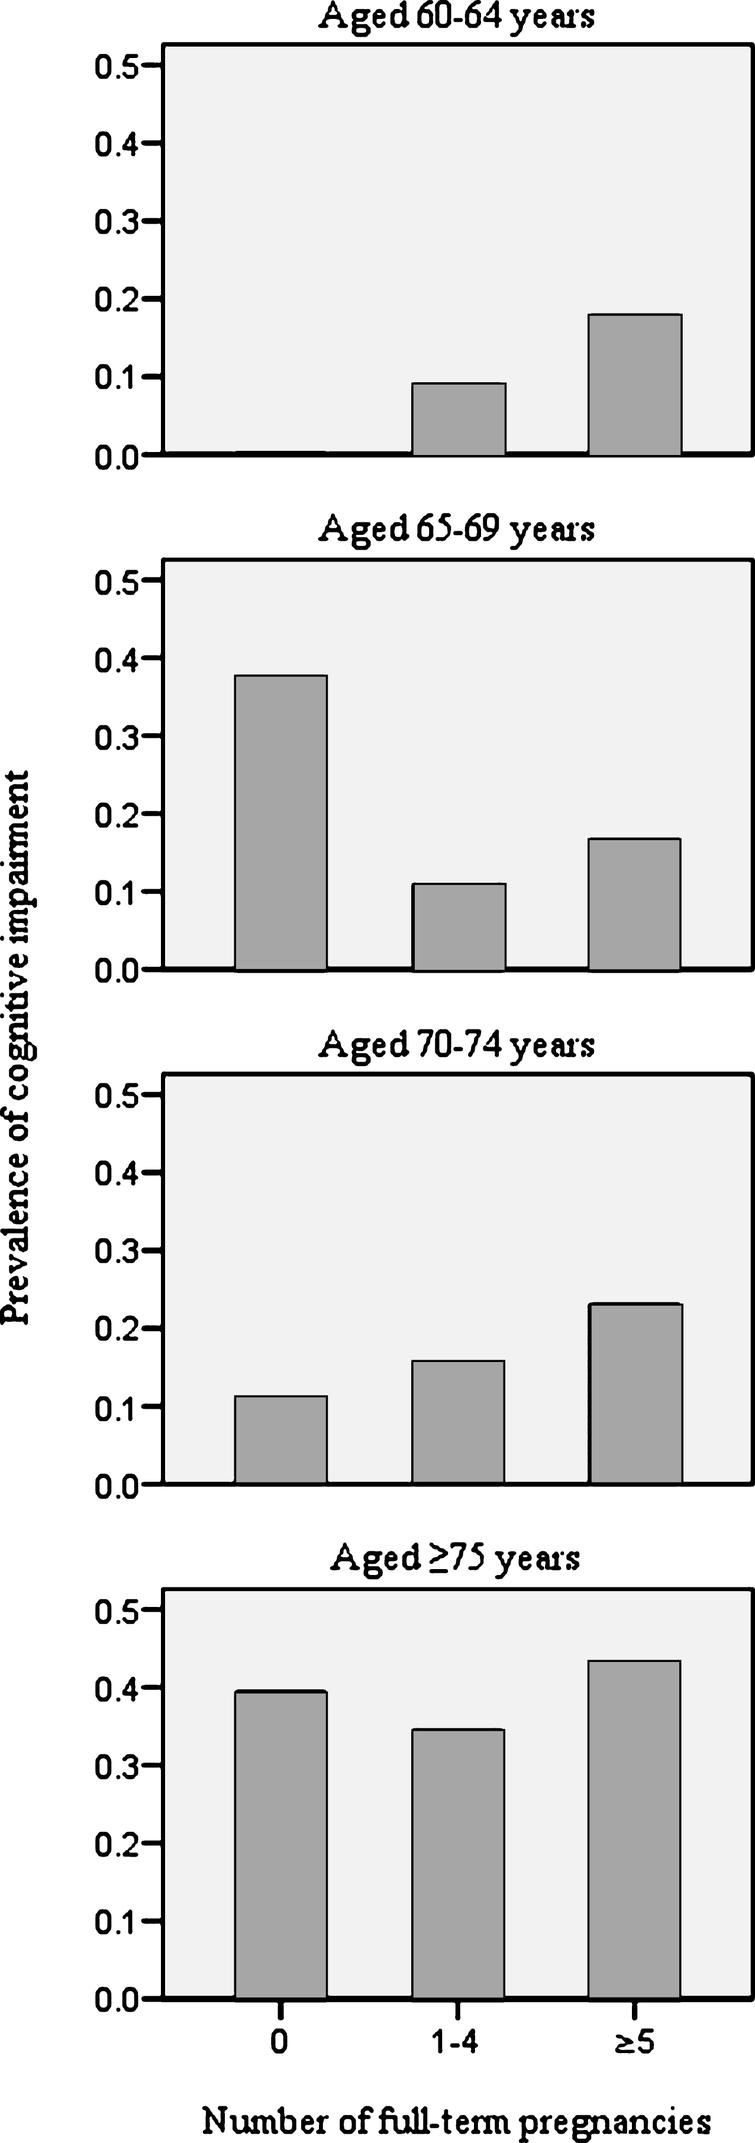 Crude age-specific prevalence of cognitive impairment by number of full-term pregnancies.